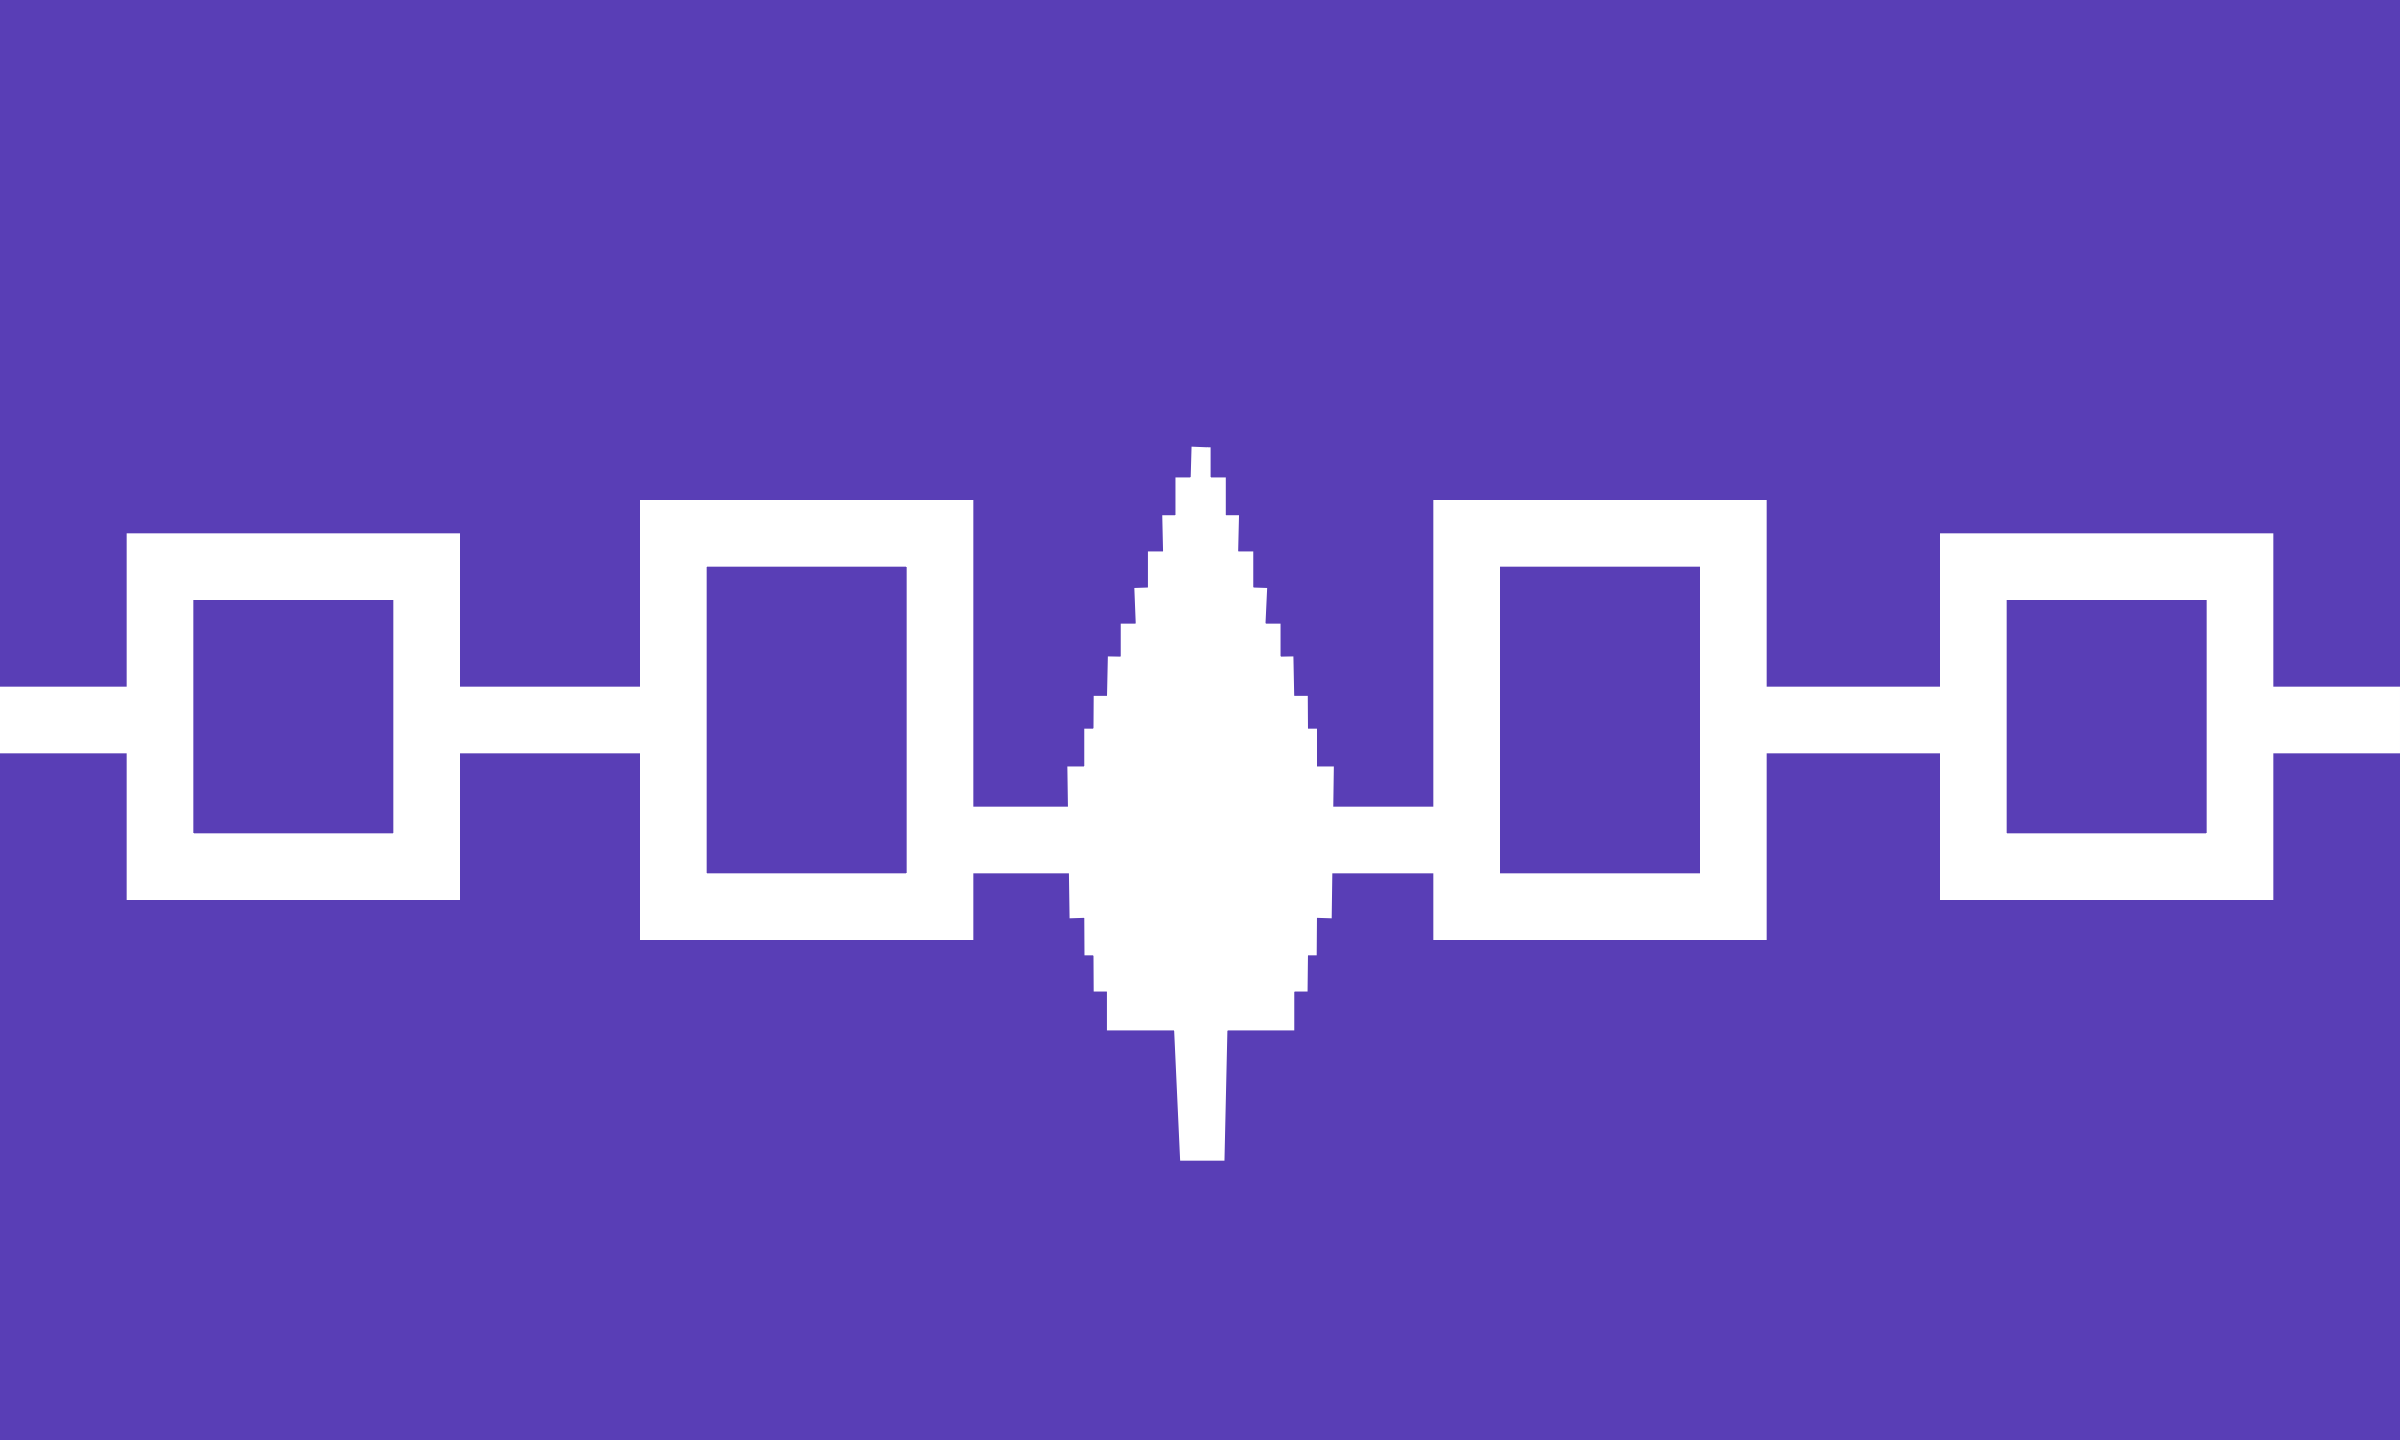 Iroquois Confederacy flag by Andy_Gardner